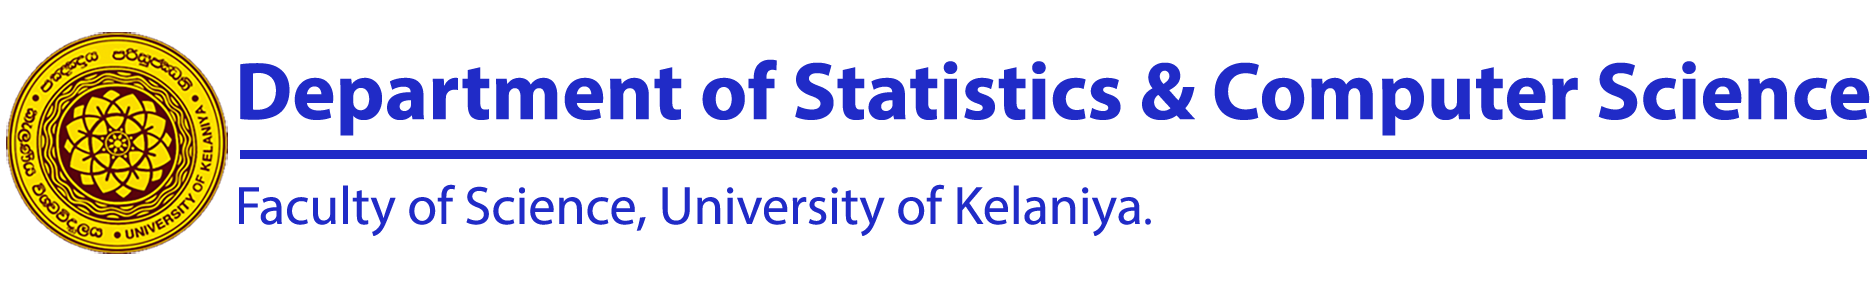 Department of Statistics & Computer Science